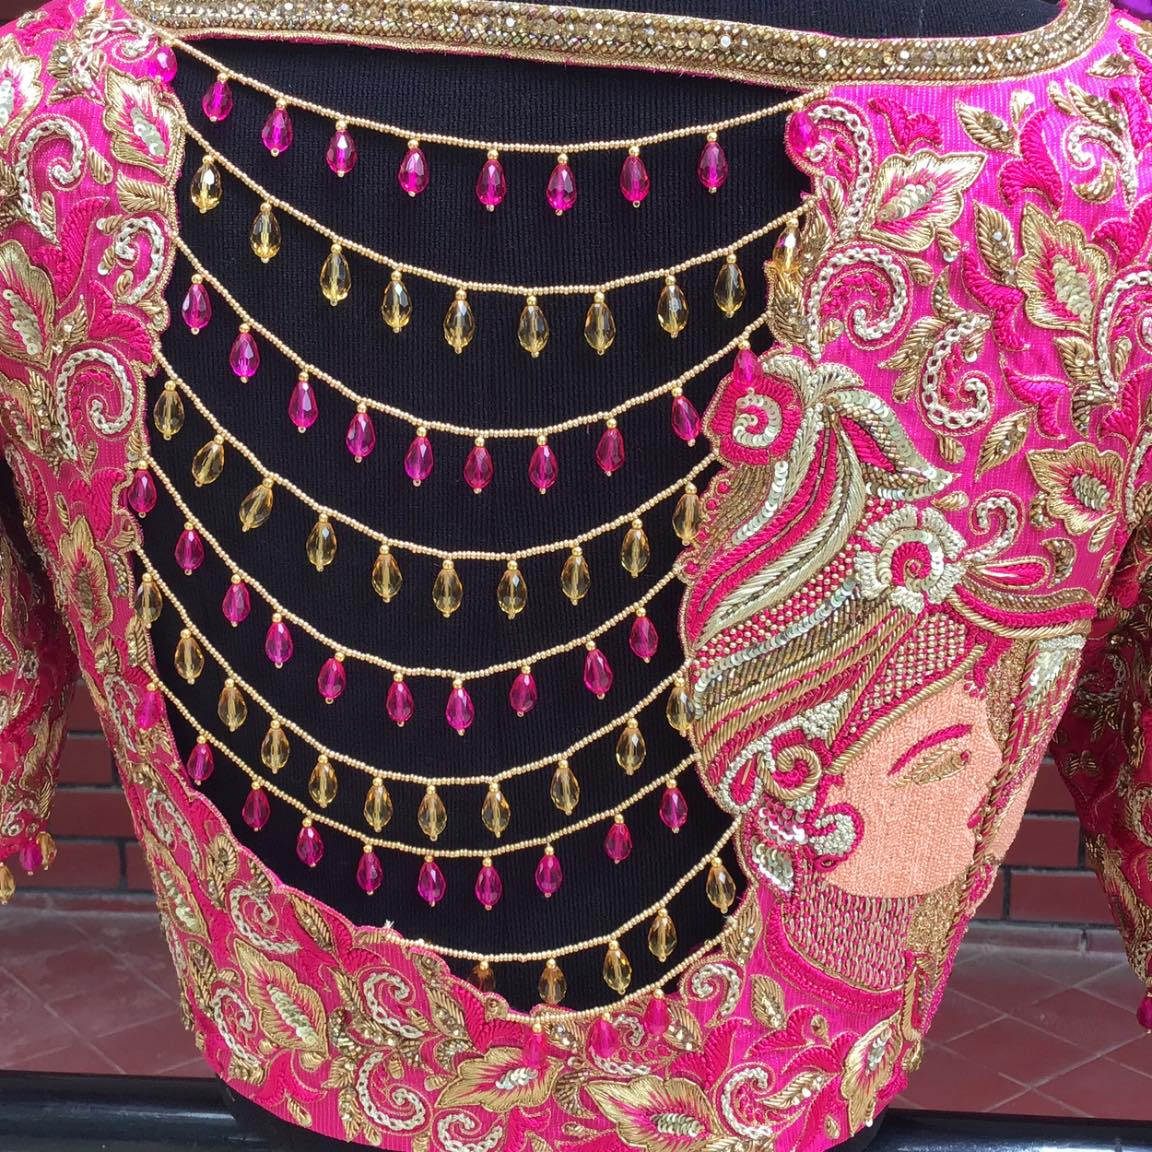 The embroidery in this blouse is so intricately done using zari metallic thread silk thread sequence work different embroidery stitches and styled with jade-crystal to give that added bling to the bridal blouse to make pretty bride To look prettier on her Big day. 2021-09-08